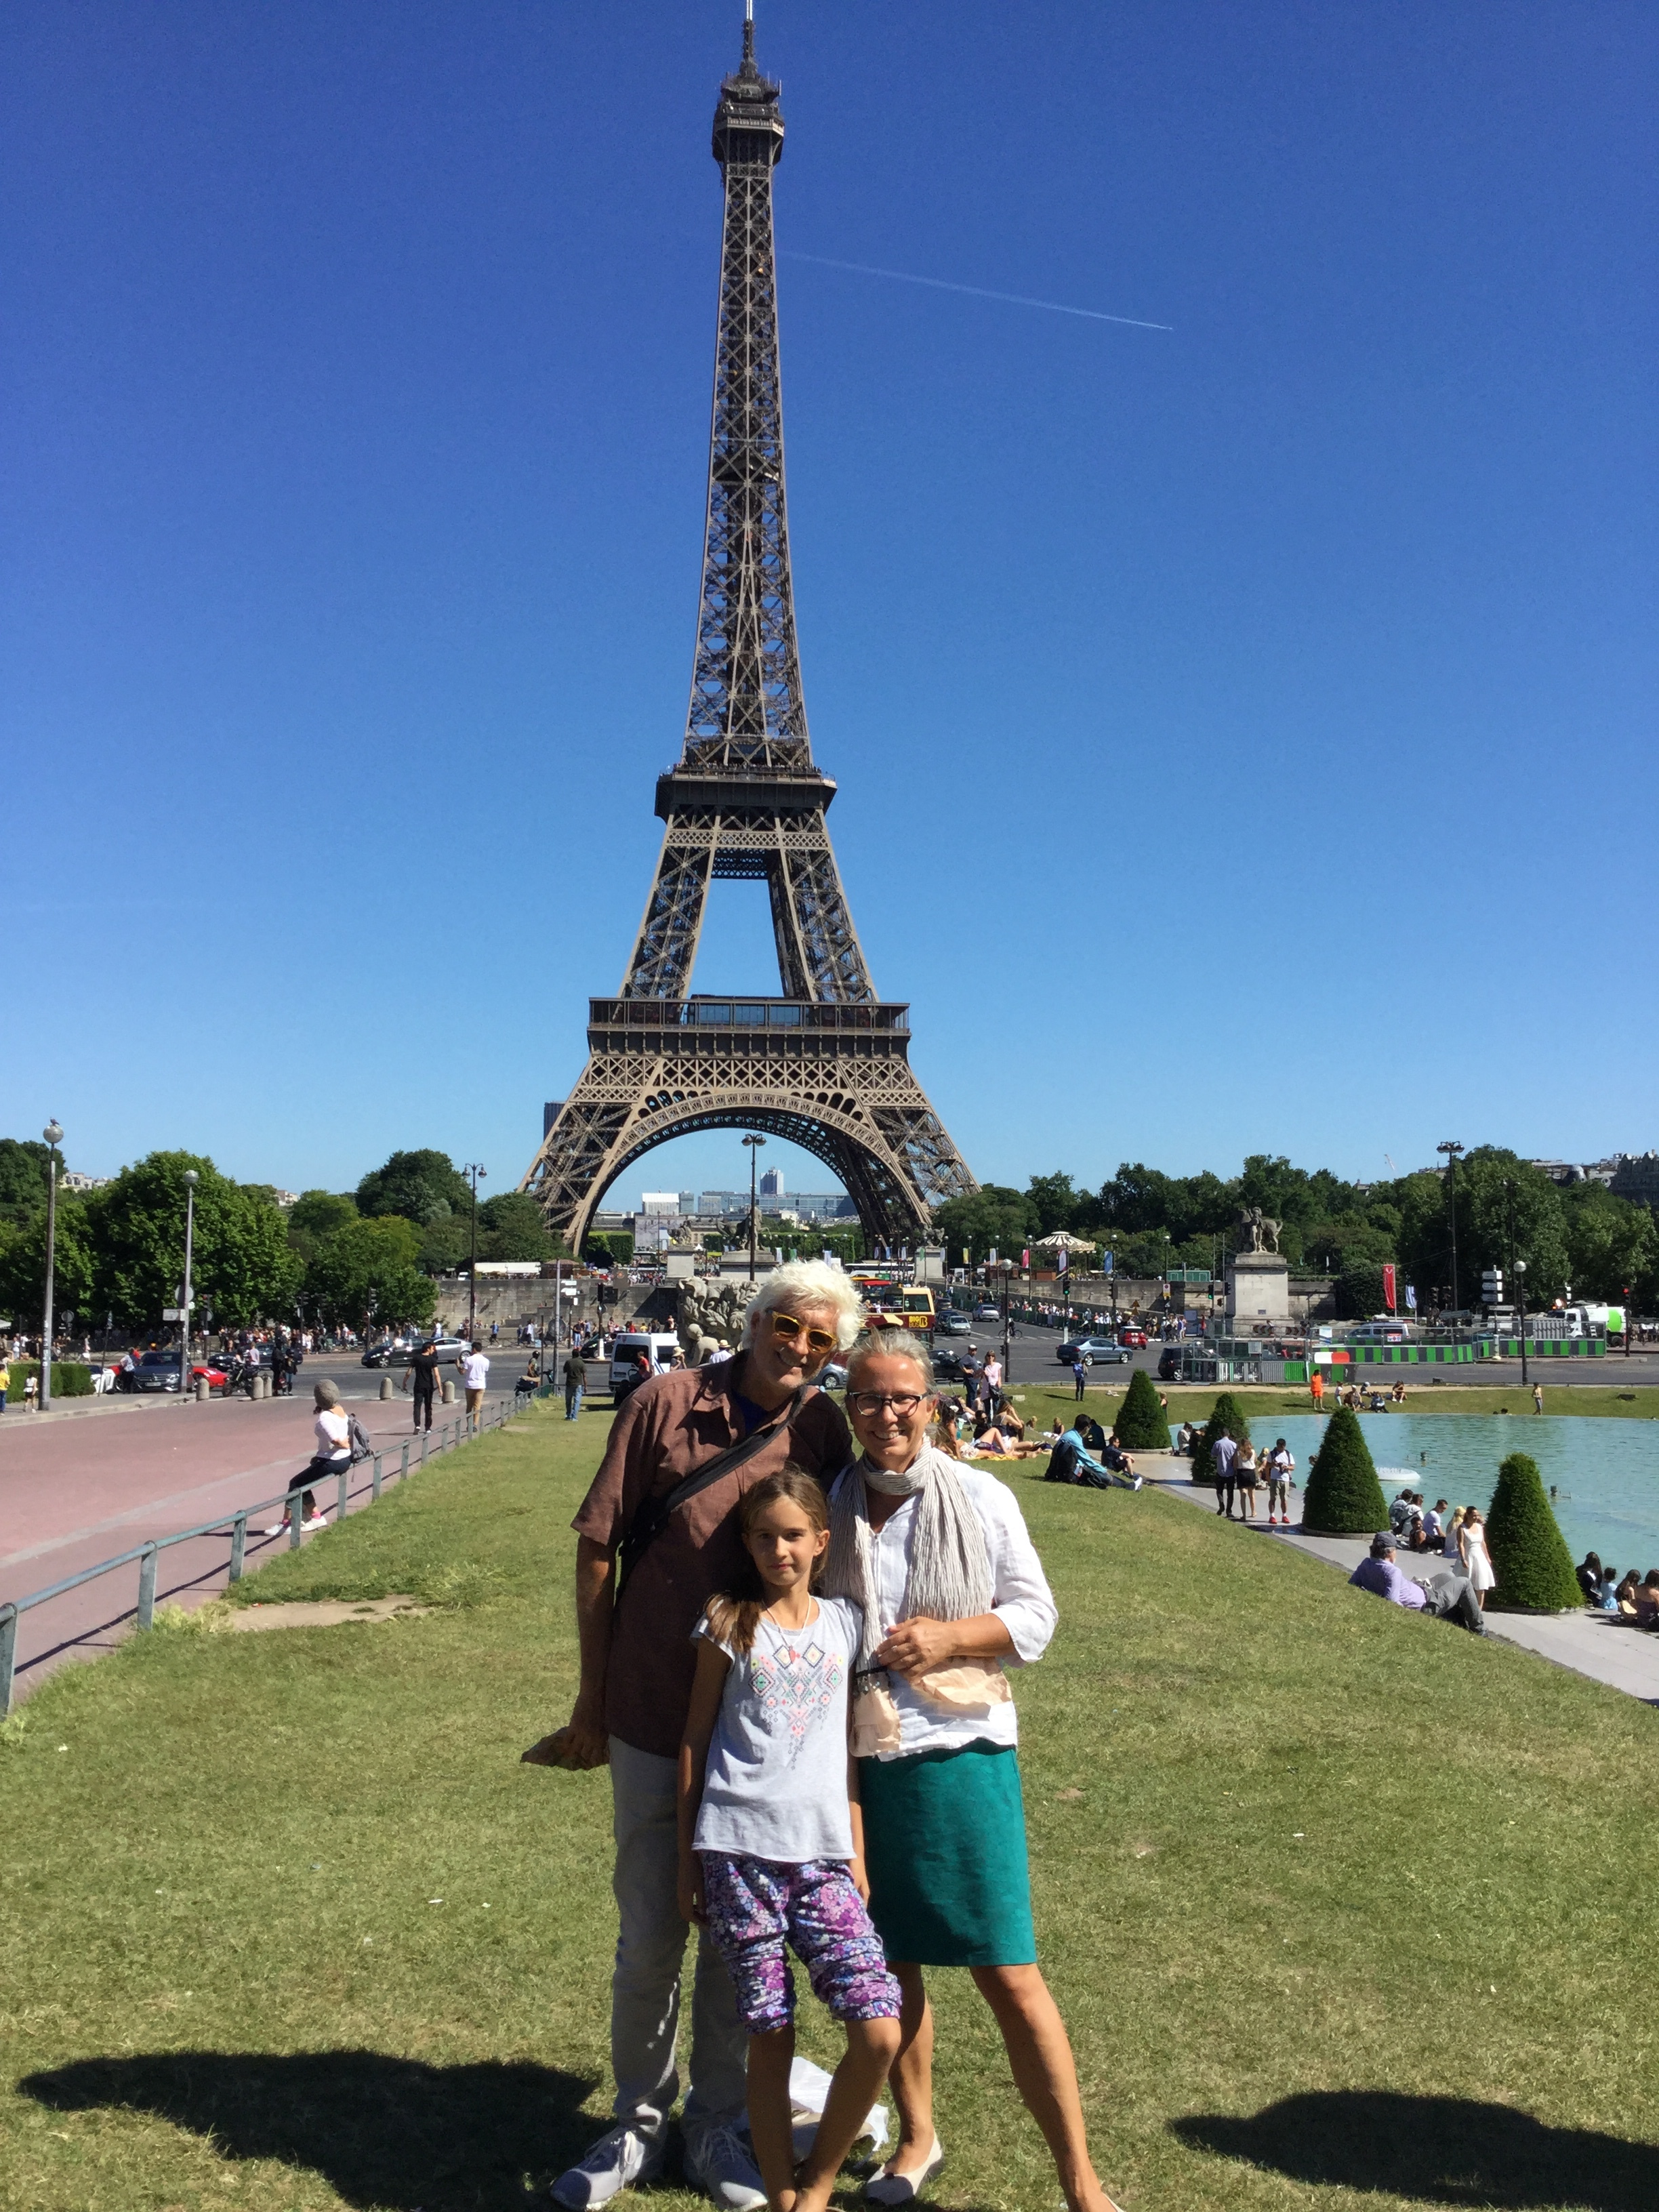 And here we are on the Trocadéro side. Both Lili and I ended up cooling our feet in the pool.